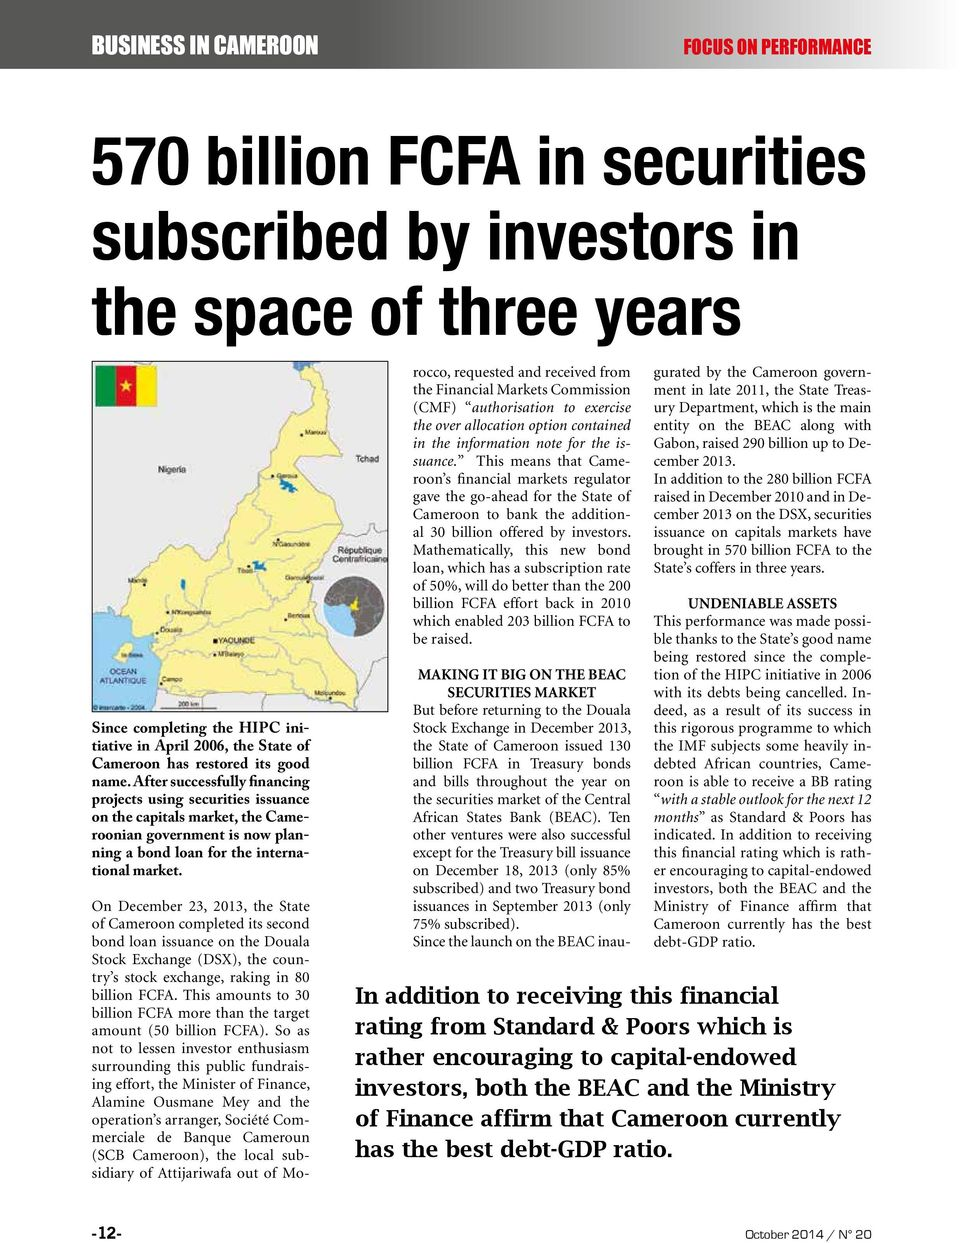 On December 23, 2013, the State of Cameroon completed its second bond loan issuance on the Douala Stock Exchange (DSX), the country s stock exchange, raking in 80 billion FCFA.